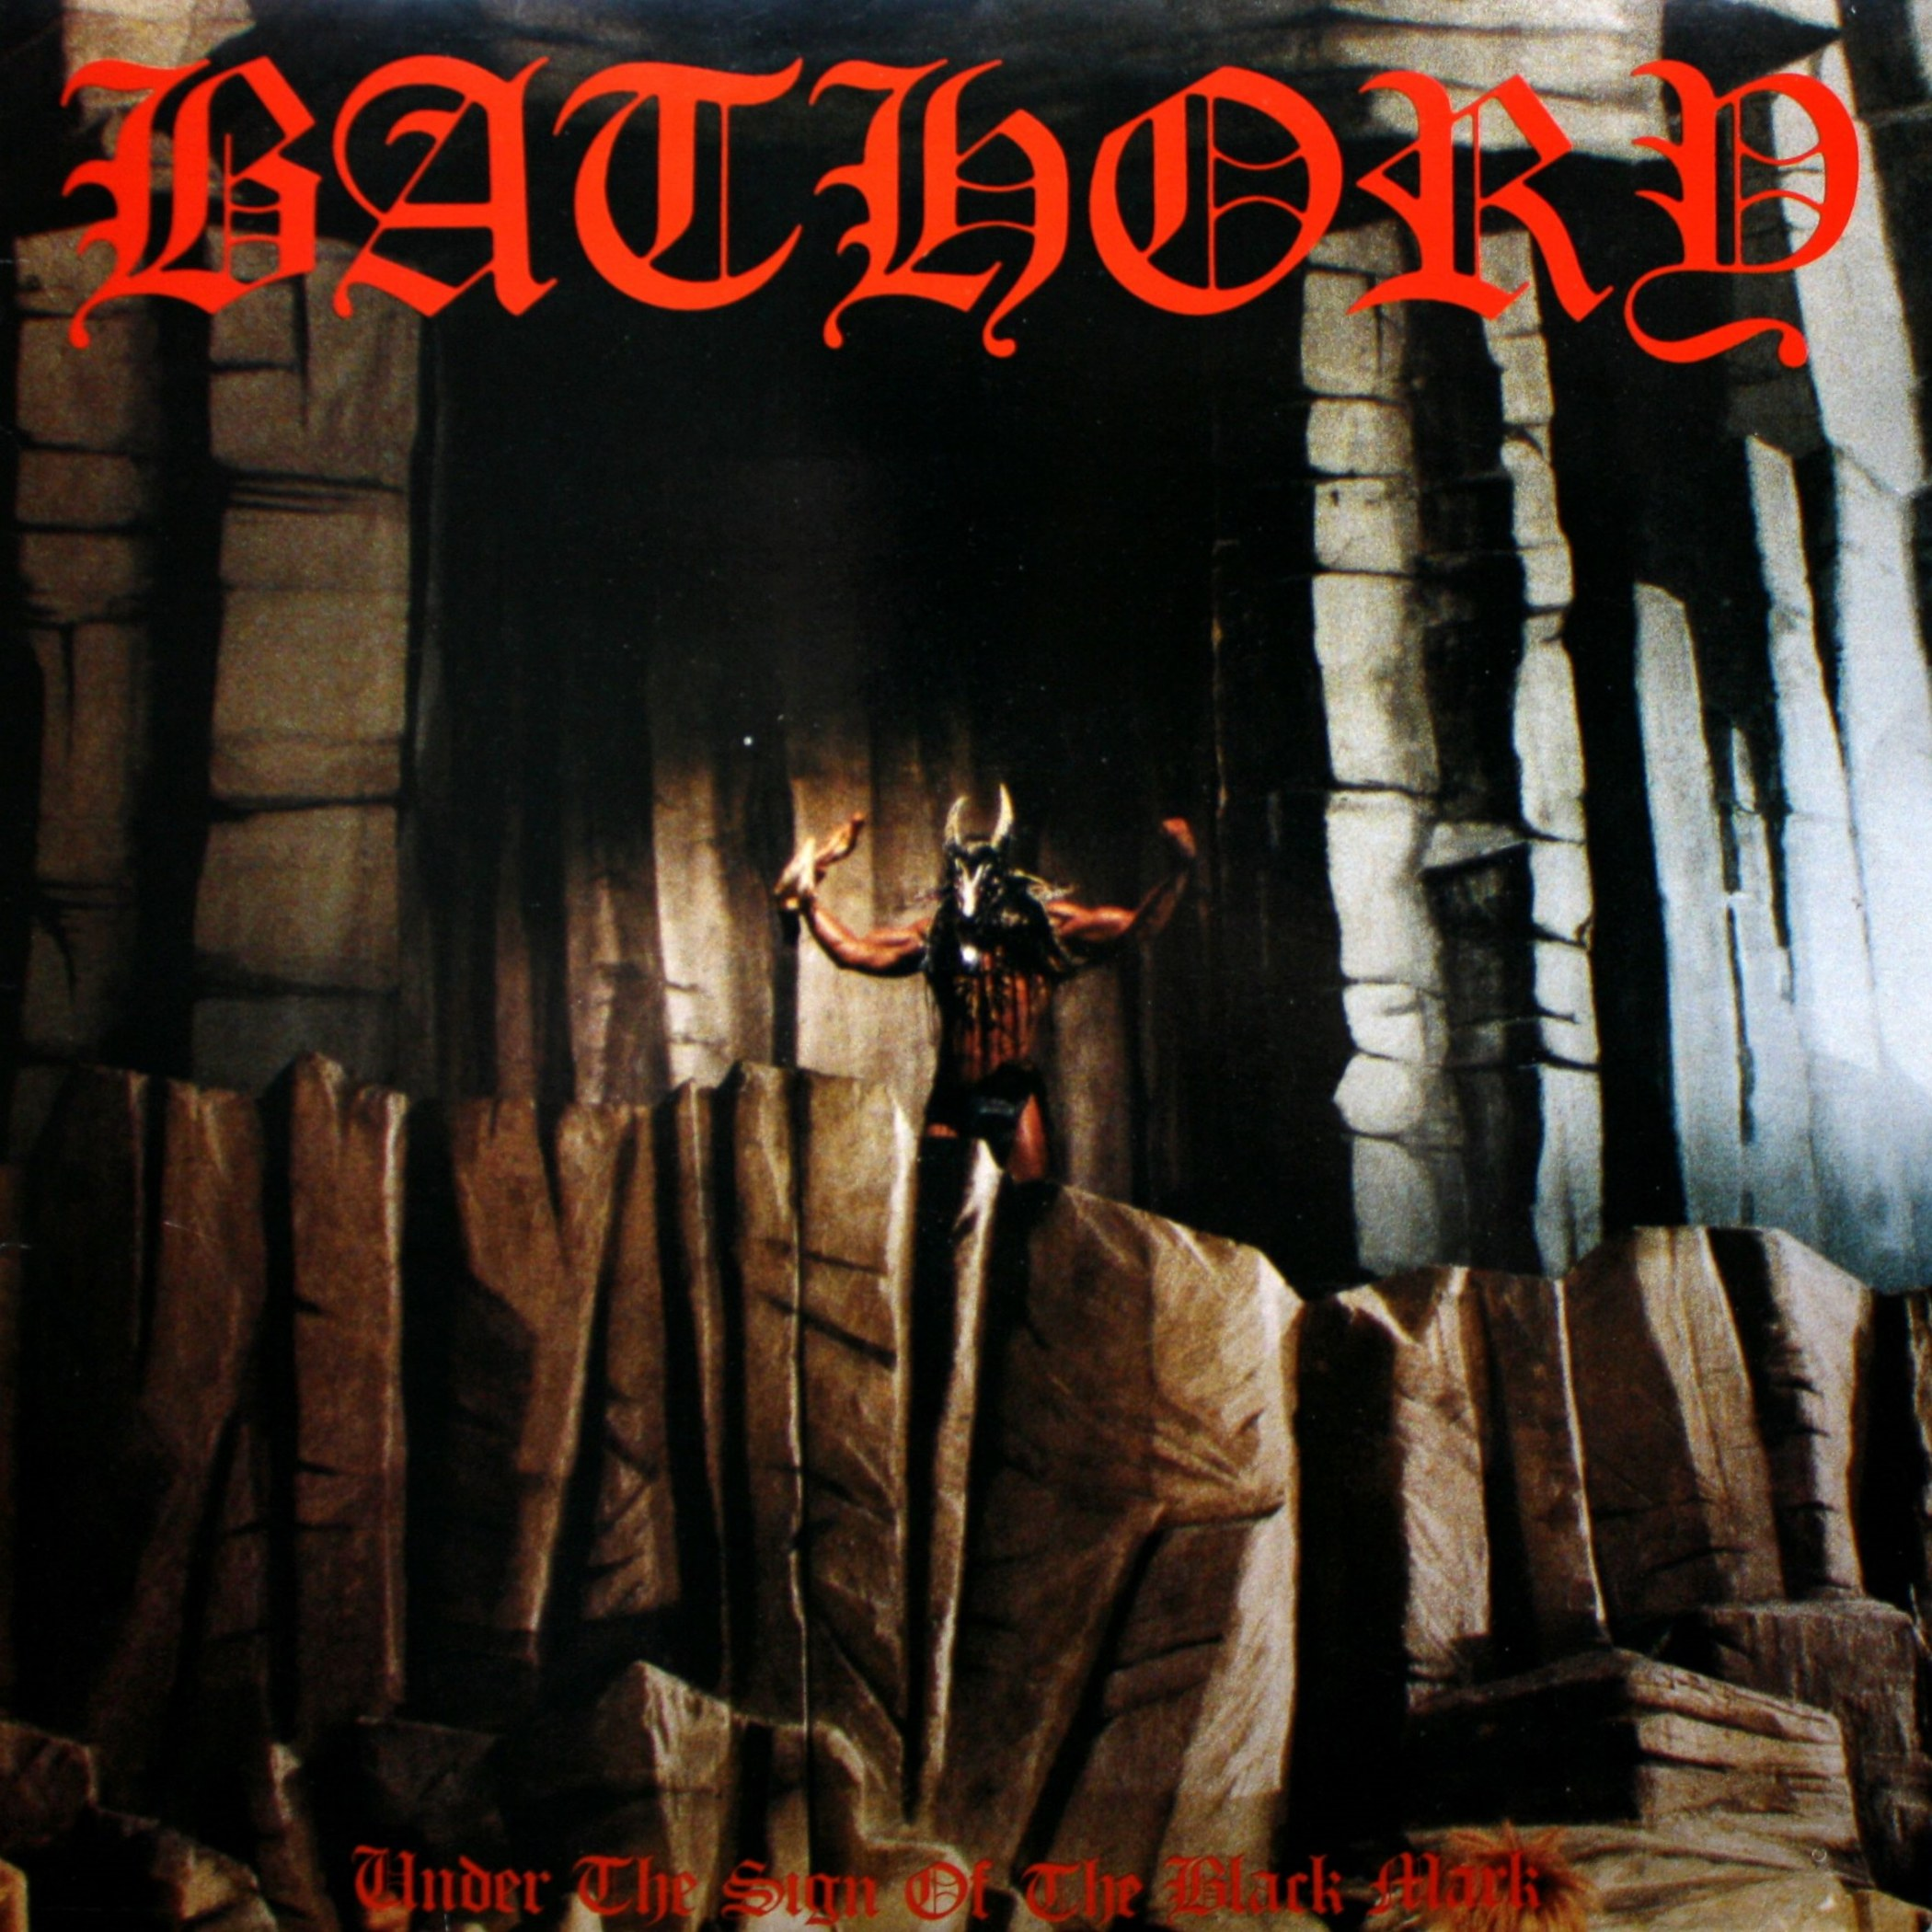 Review for Bathory - Under the Sign of the Black Mark